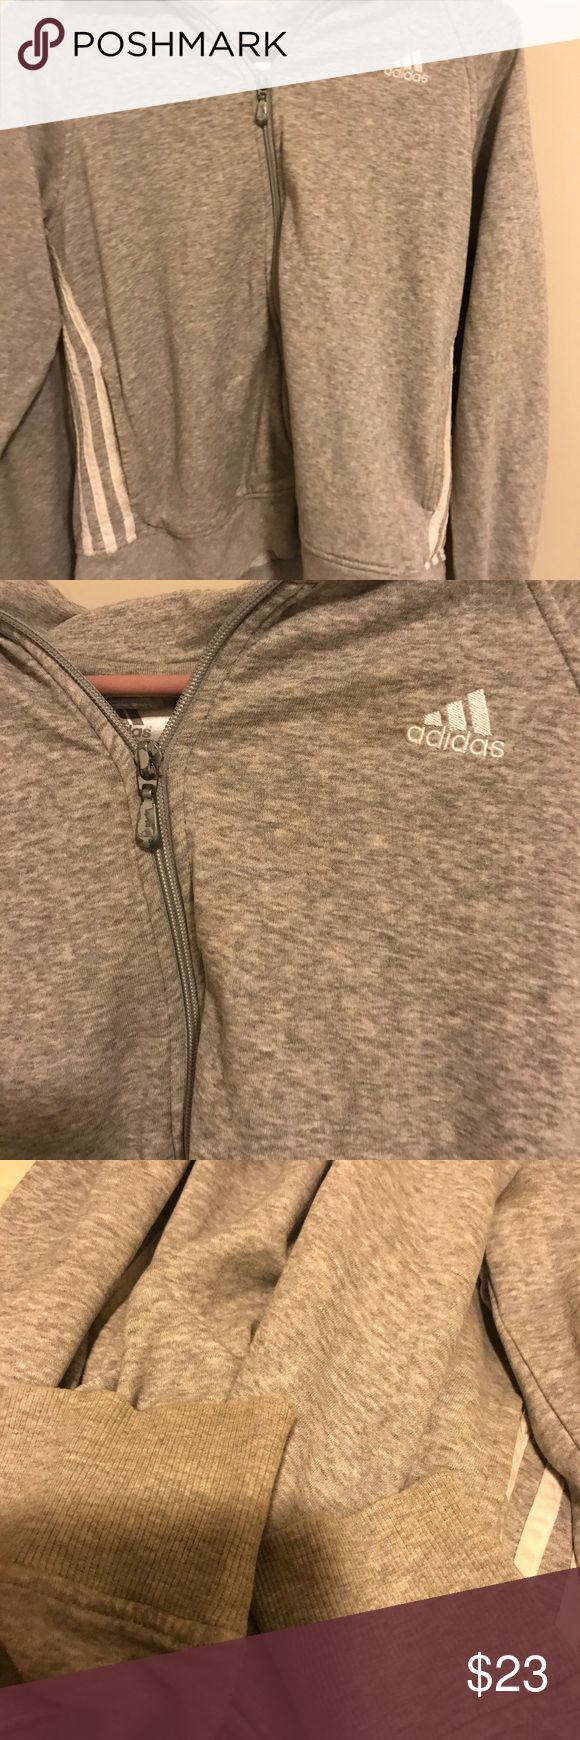 Adidas zip up Adidas zip up size medium. I'm guessing this is ladies. Sweat shirt material and zips fully. Does have some spotting and wear. Couldn't capture everything great in pictures. It's nice for lazy days. Otherwise in overall good condition. Low price reflects flaws sold as is no returns. adidas Sweaters